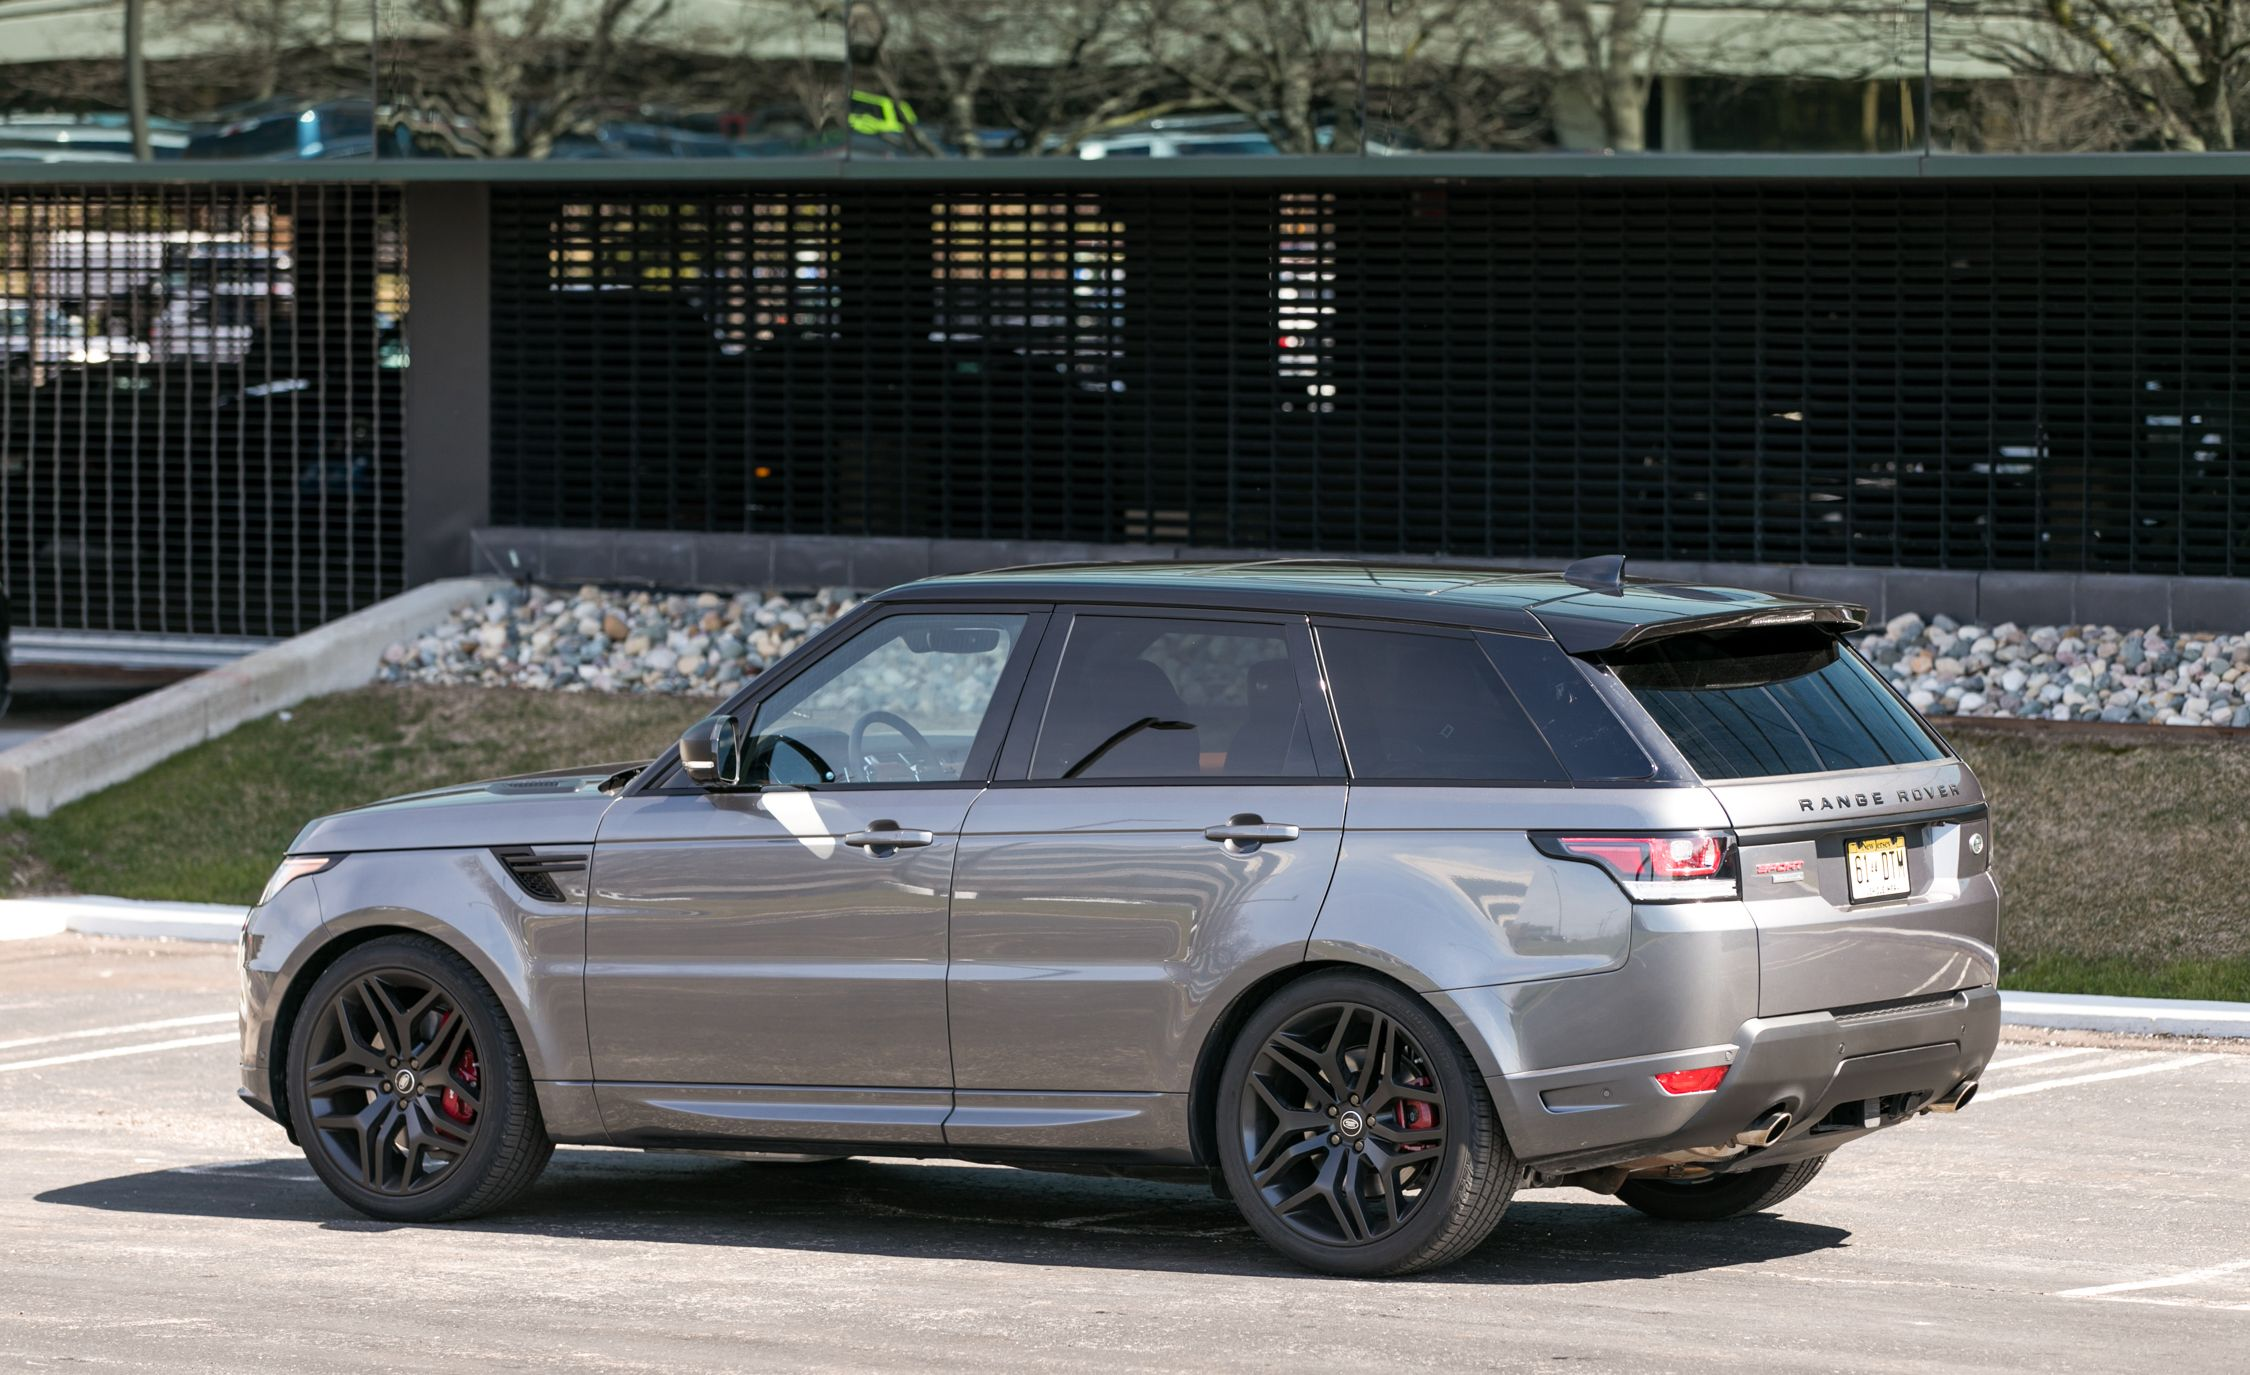 2017 Land Rover Range Sport Supercharged Svr Performance And Driving Impressions Review Car Driver